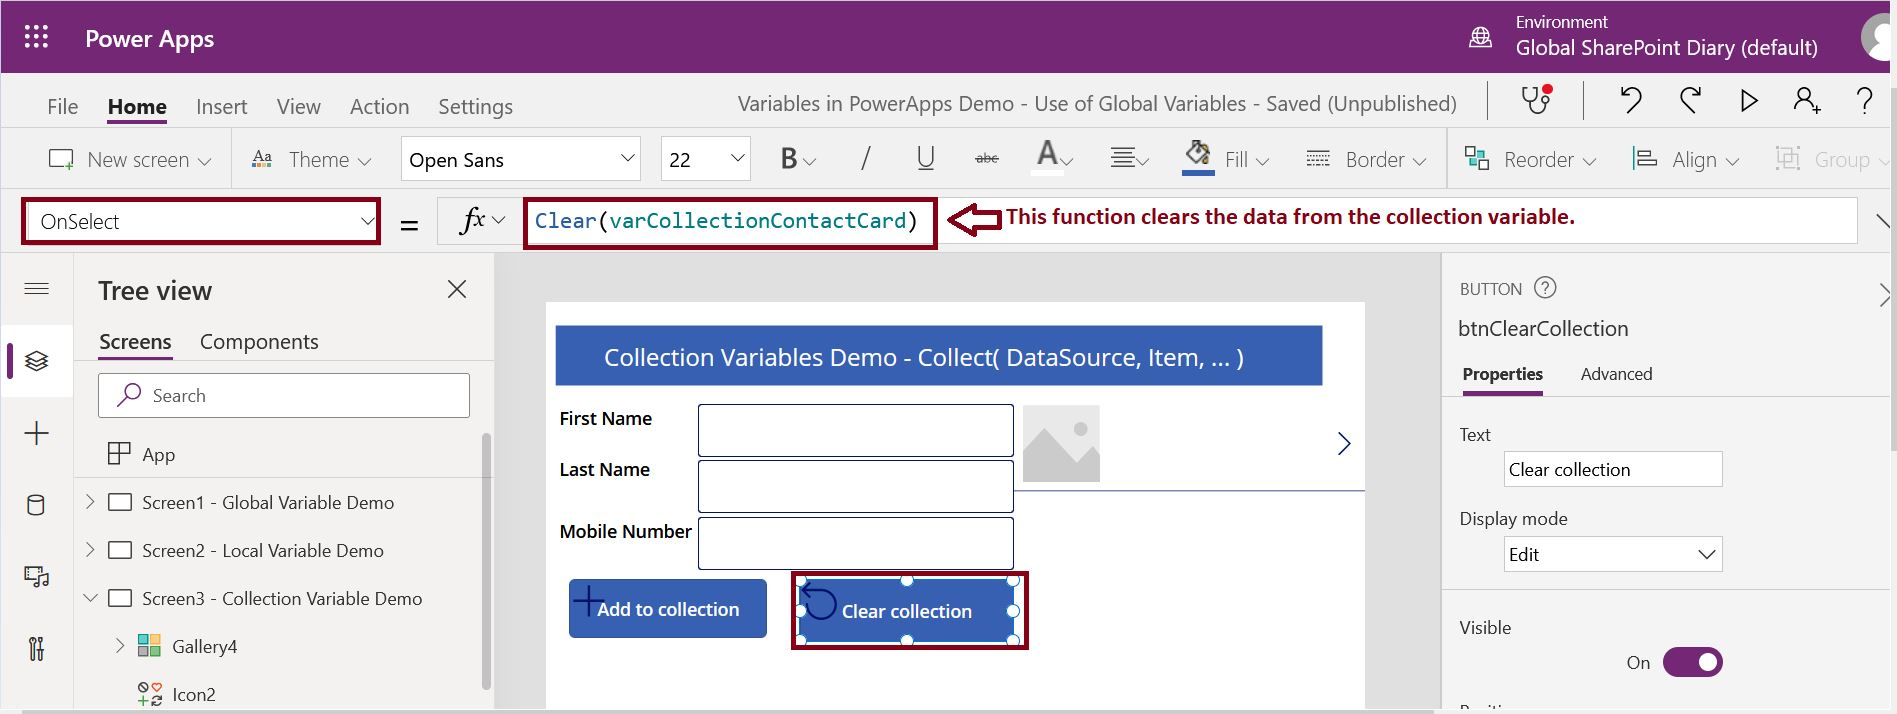 How to use clear function in PowerApps Canvas app?